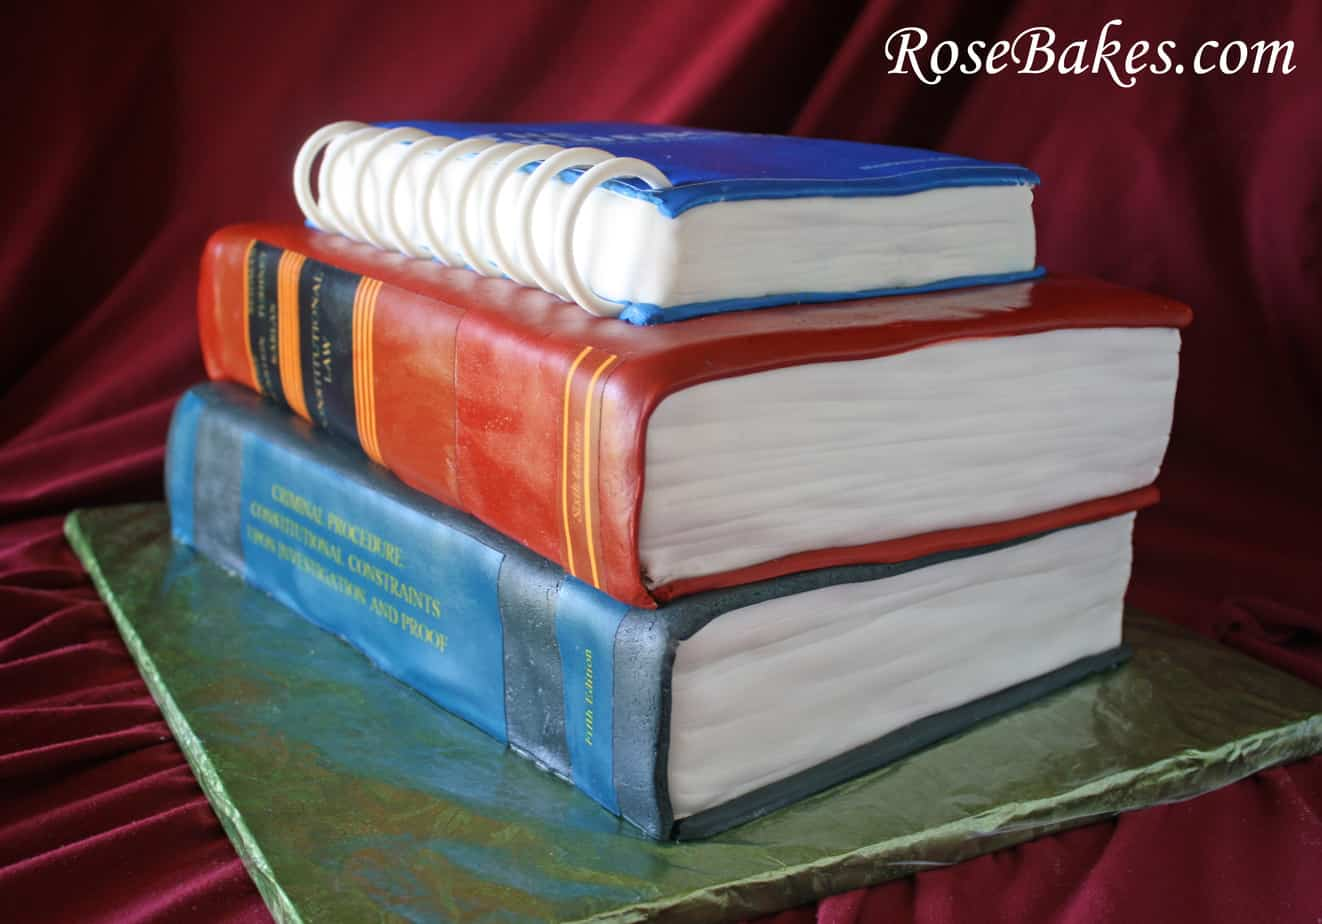 Law School Graduation Books Textbooks Grooms Cake 2